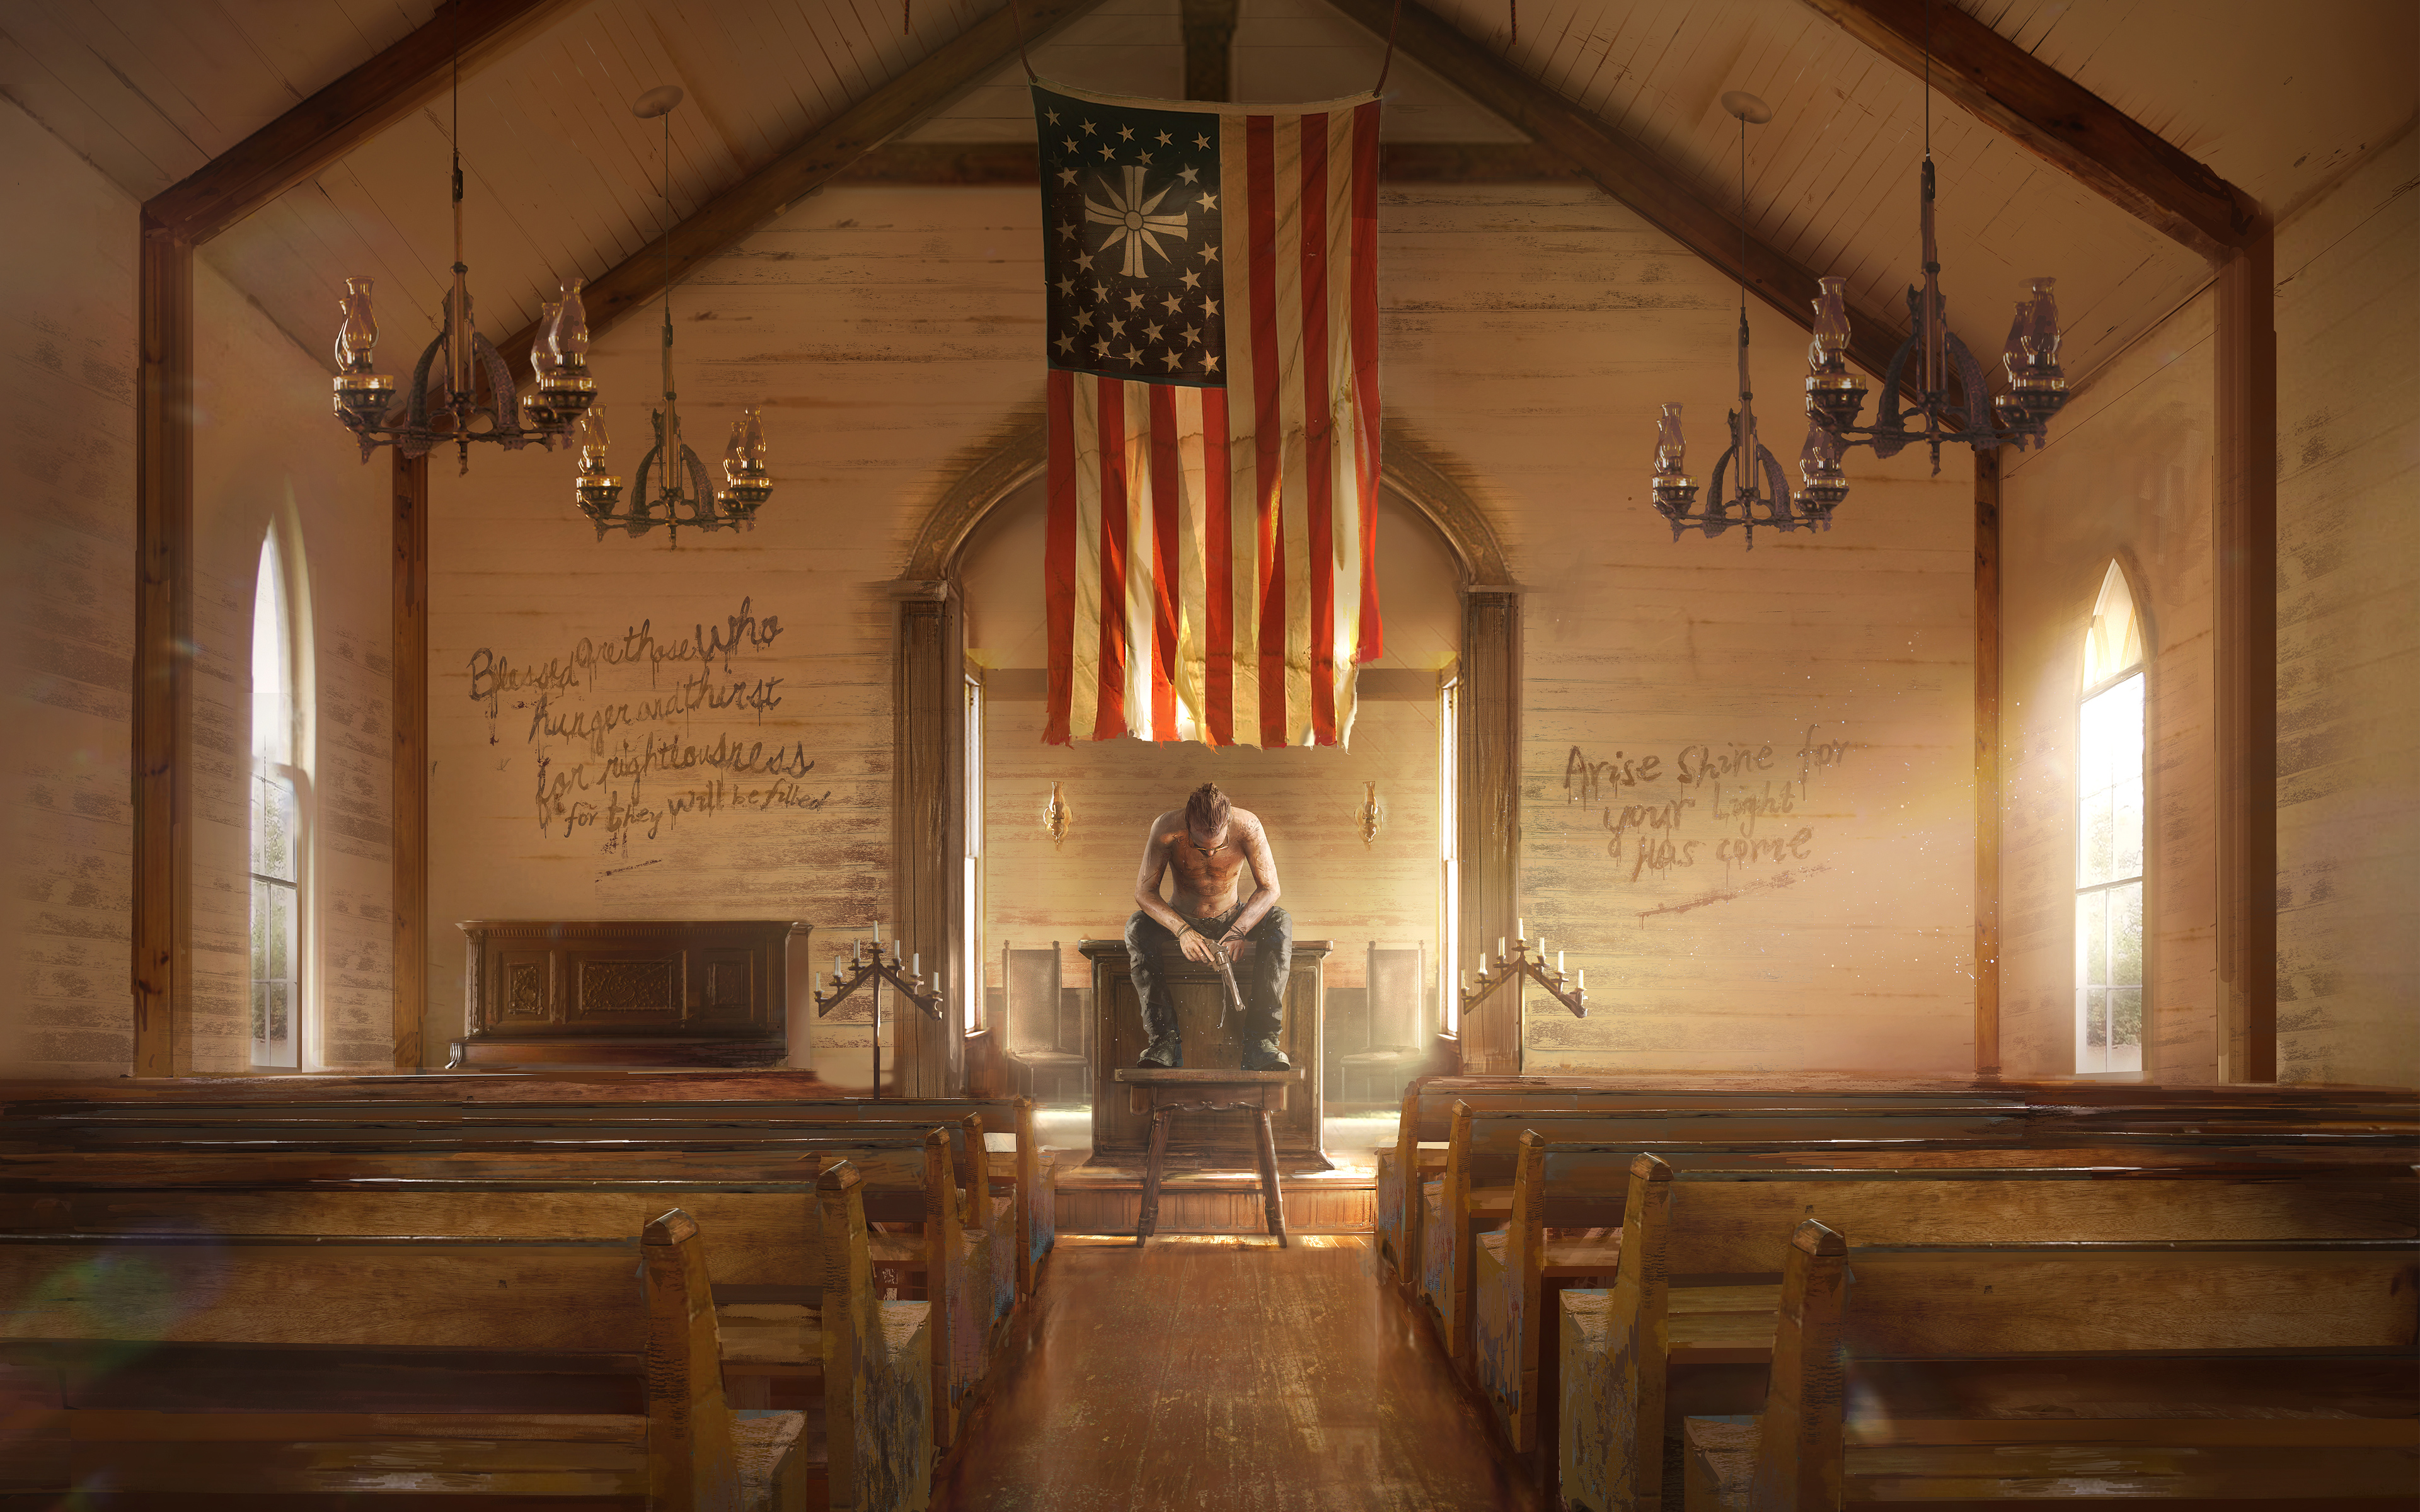 Far Cry 5 Wallpaper 4k: Far Cry 5 Absolution 4K 8K Wallpapers